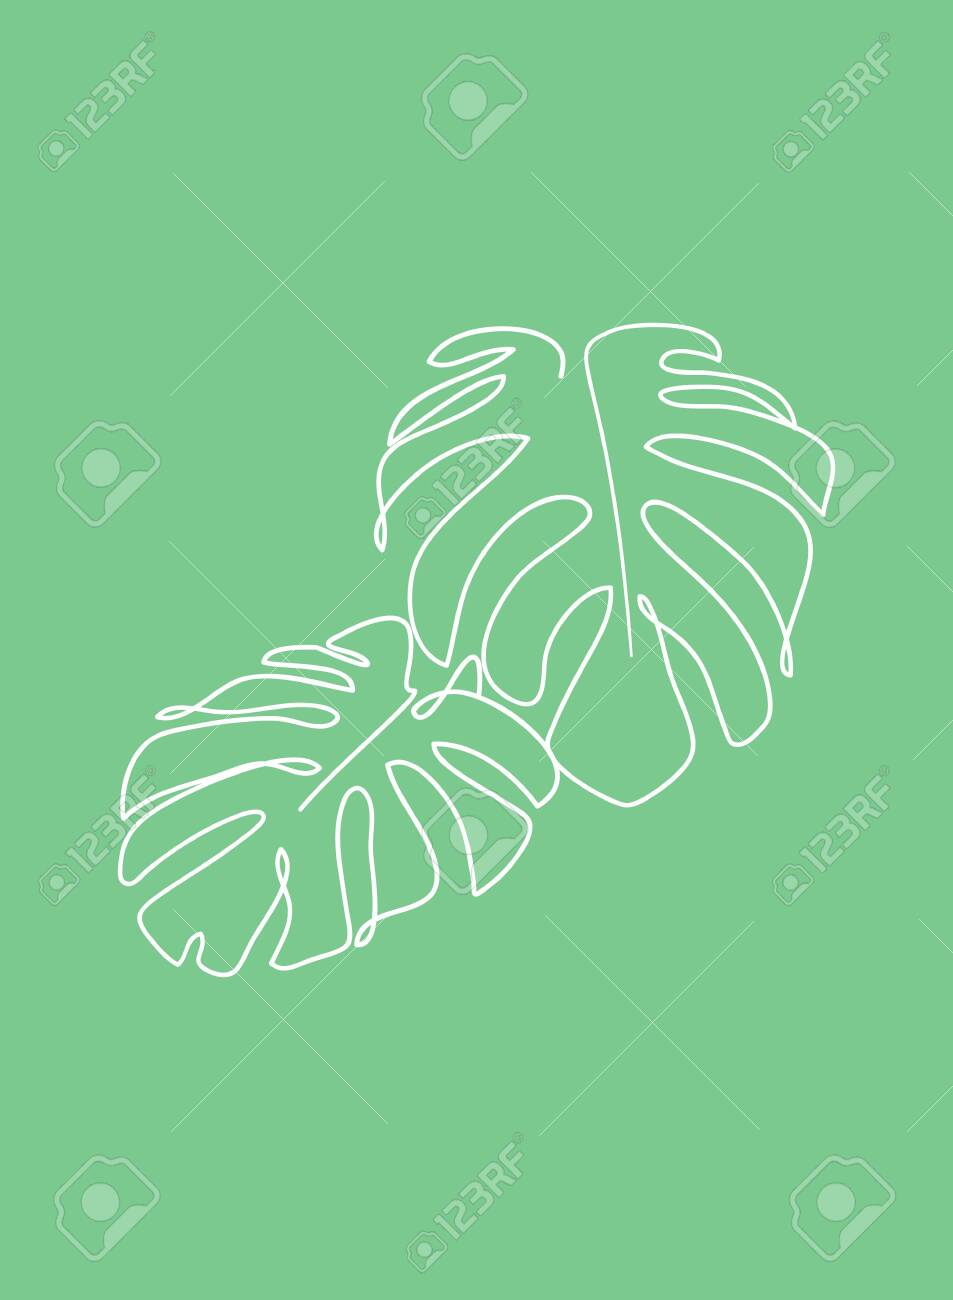 Continuous Line Plant Drawing Monstera Leaves Line Nature Icon Royalty Free Cliparts Vectors And Stock Illustration Image 154747078